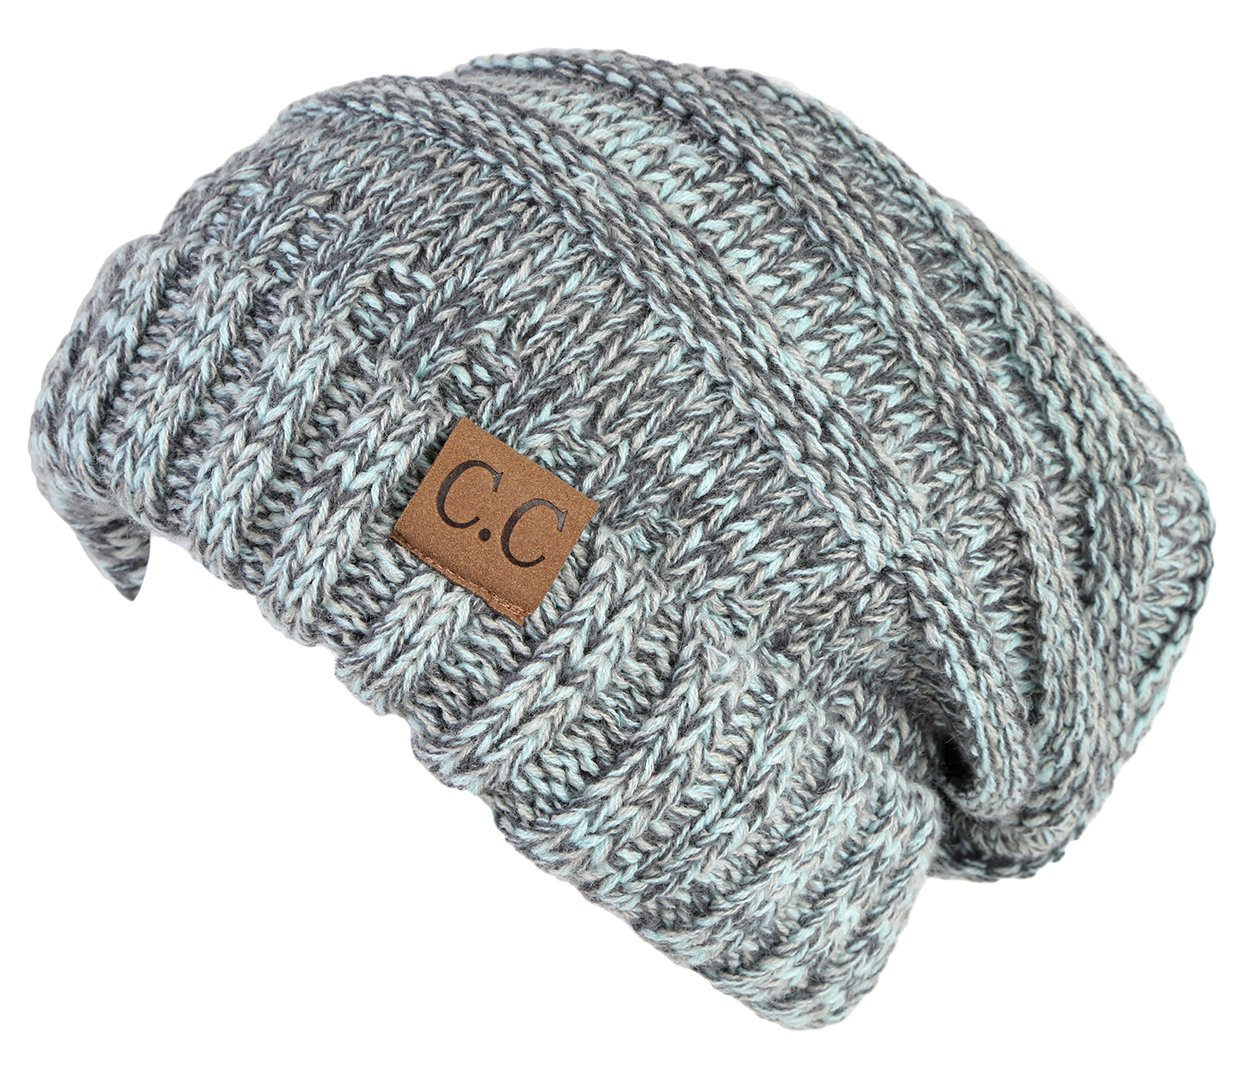 H-6100-6254 Oversized Slouchy Beanie - Hint of Mint